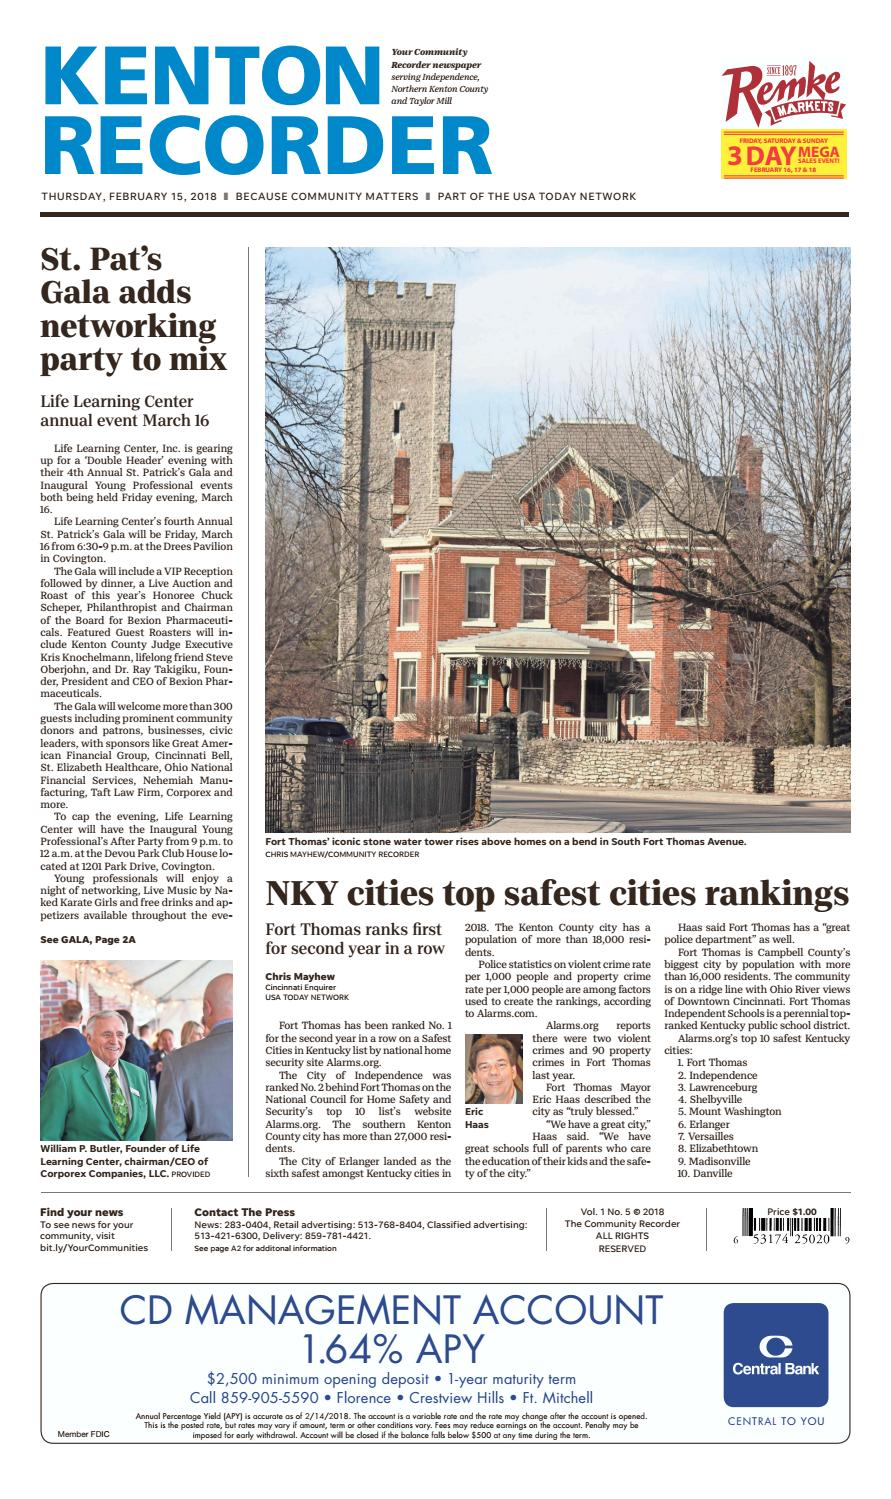 Kenton recorder 021518 by Enquirer Media - issuu 1f7838a93a75